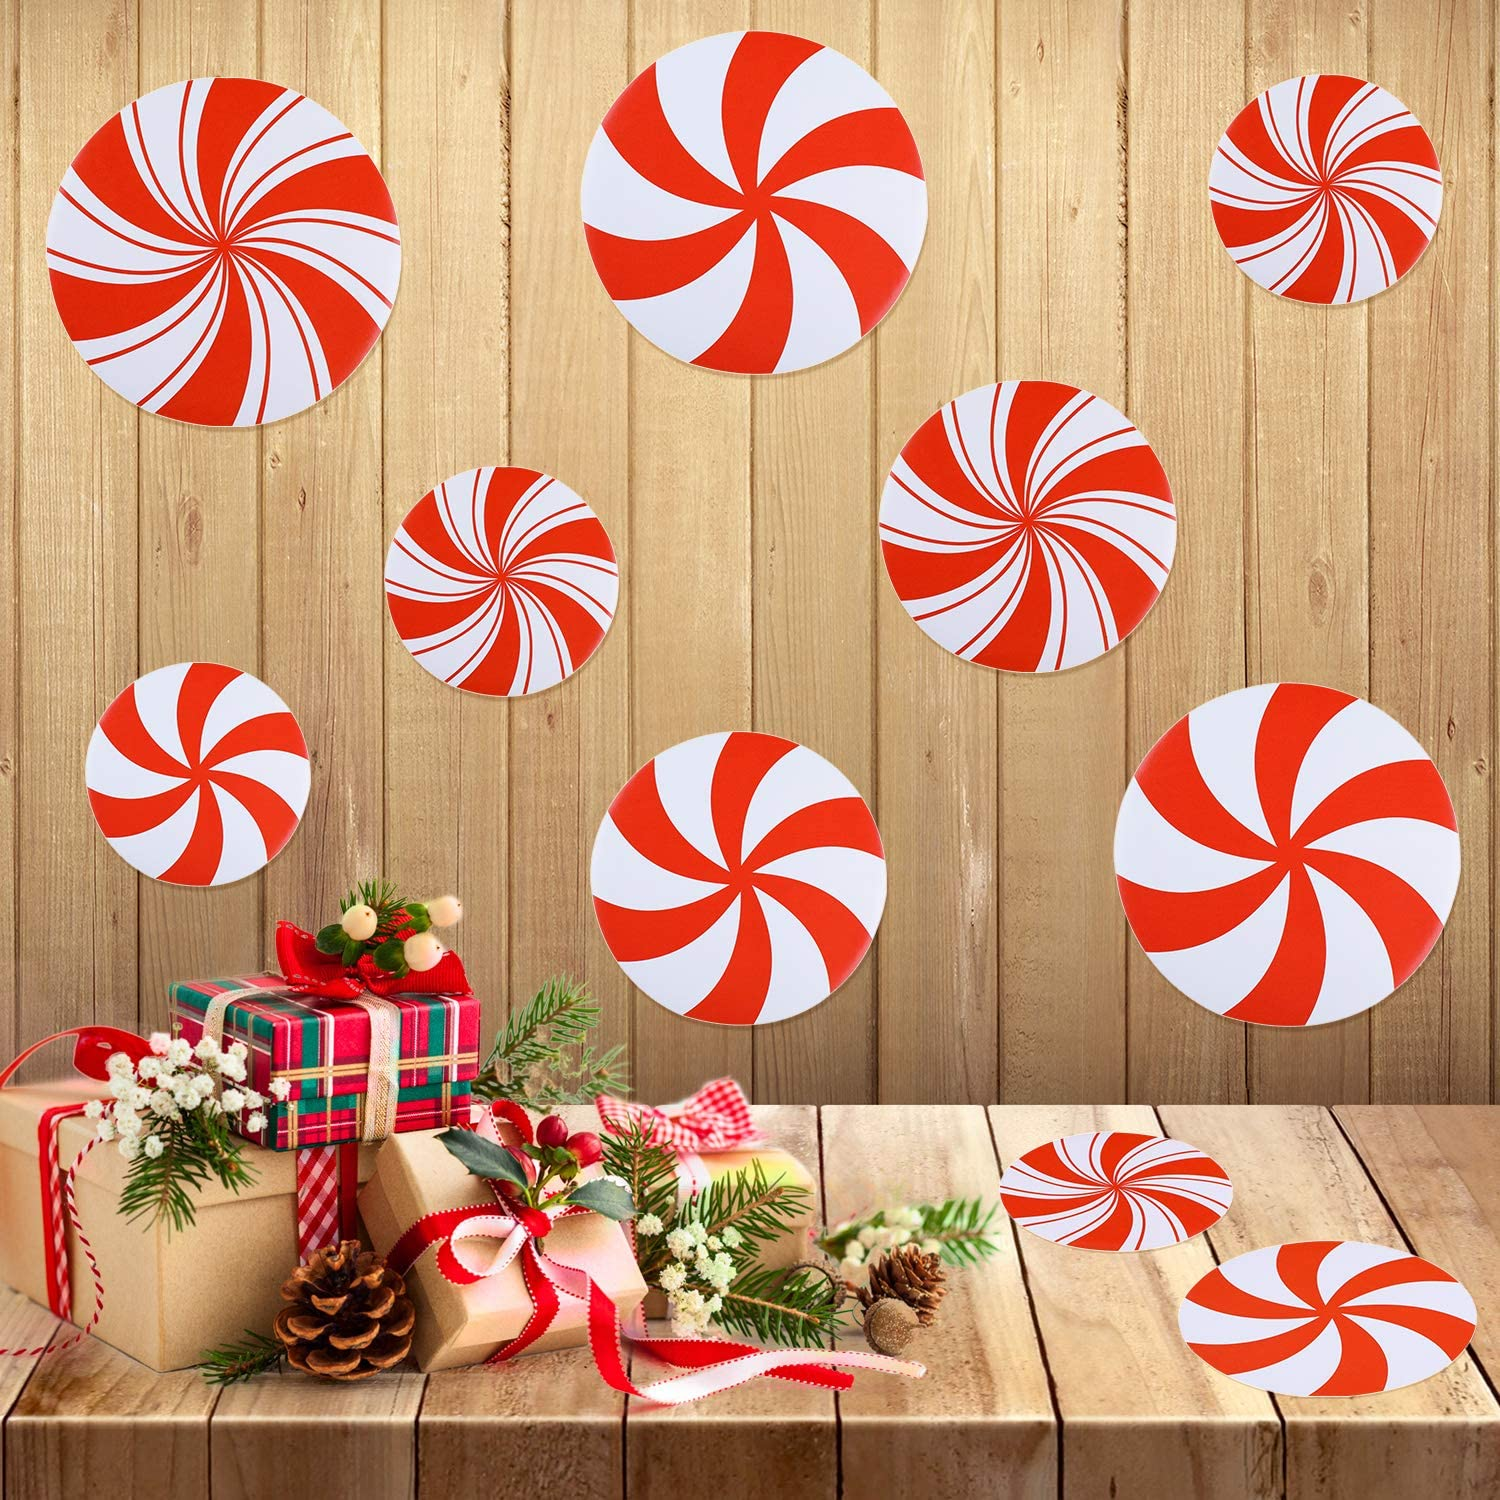 18 Pieces Peppermint Floor Decals Stickers Self-Adhesive Round Wall Candy Party Decoration for Christmas